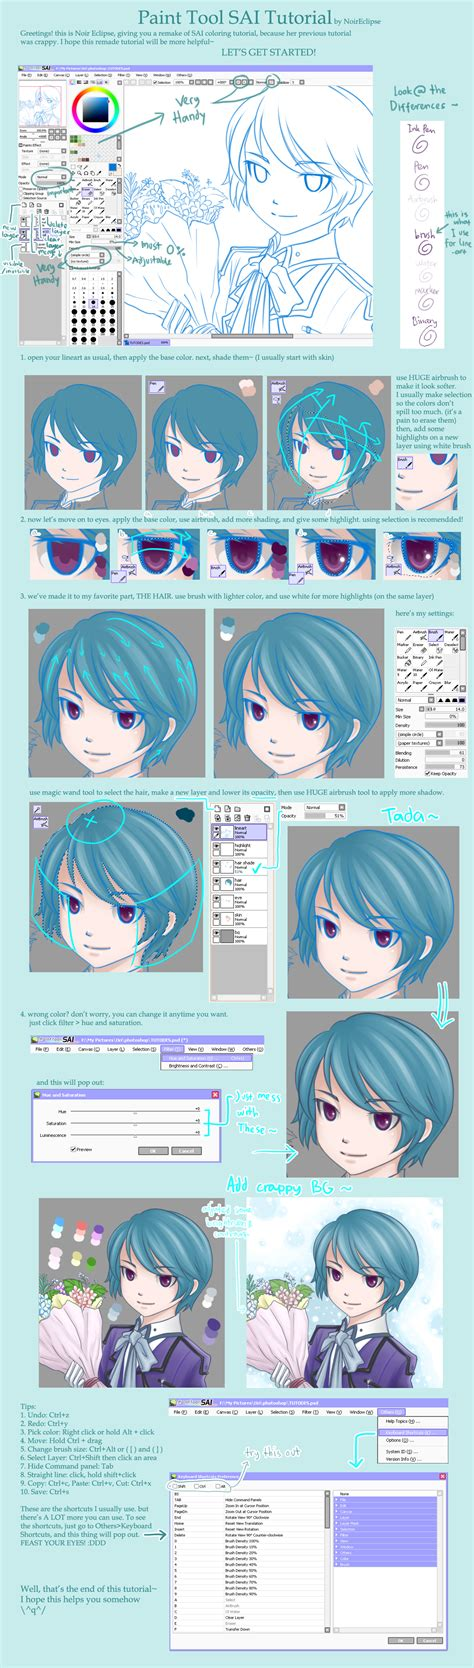 paint tool sai mask tutorial paint tool sai tutorial by noireclipse on deviantart